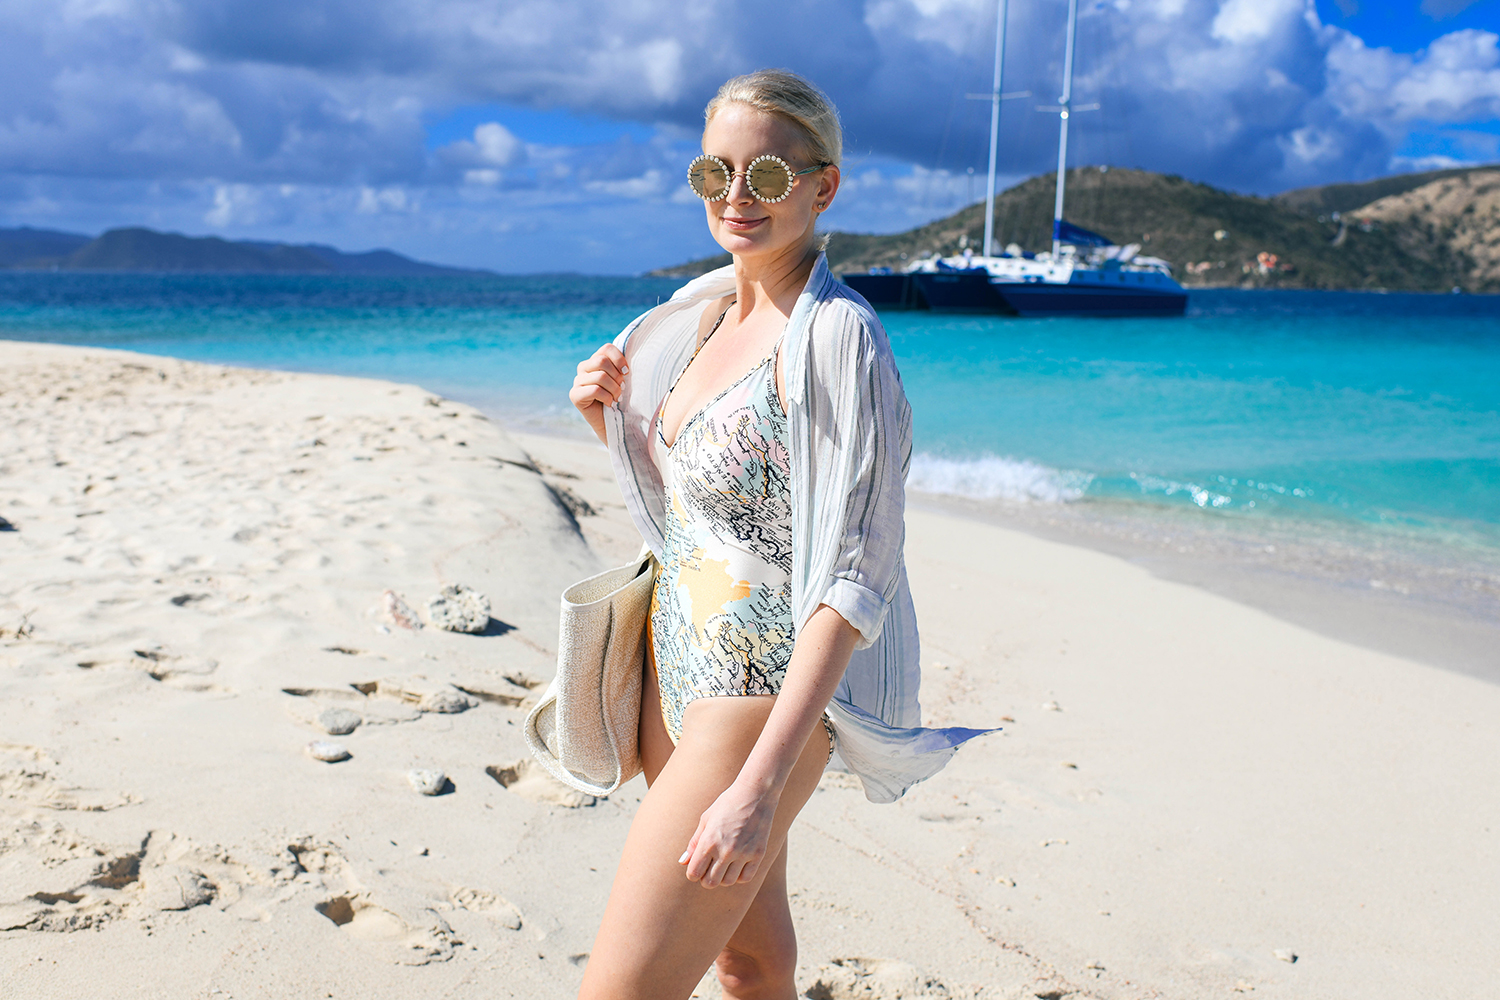 THIS SEASON'S BEST SWIMWEAR AND COVERUPS | THE ULTIMATE BEACHWEAR GUIDE